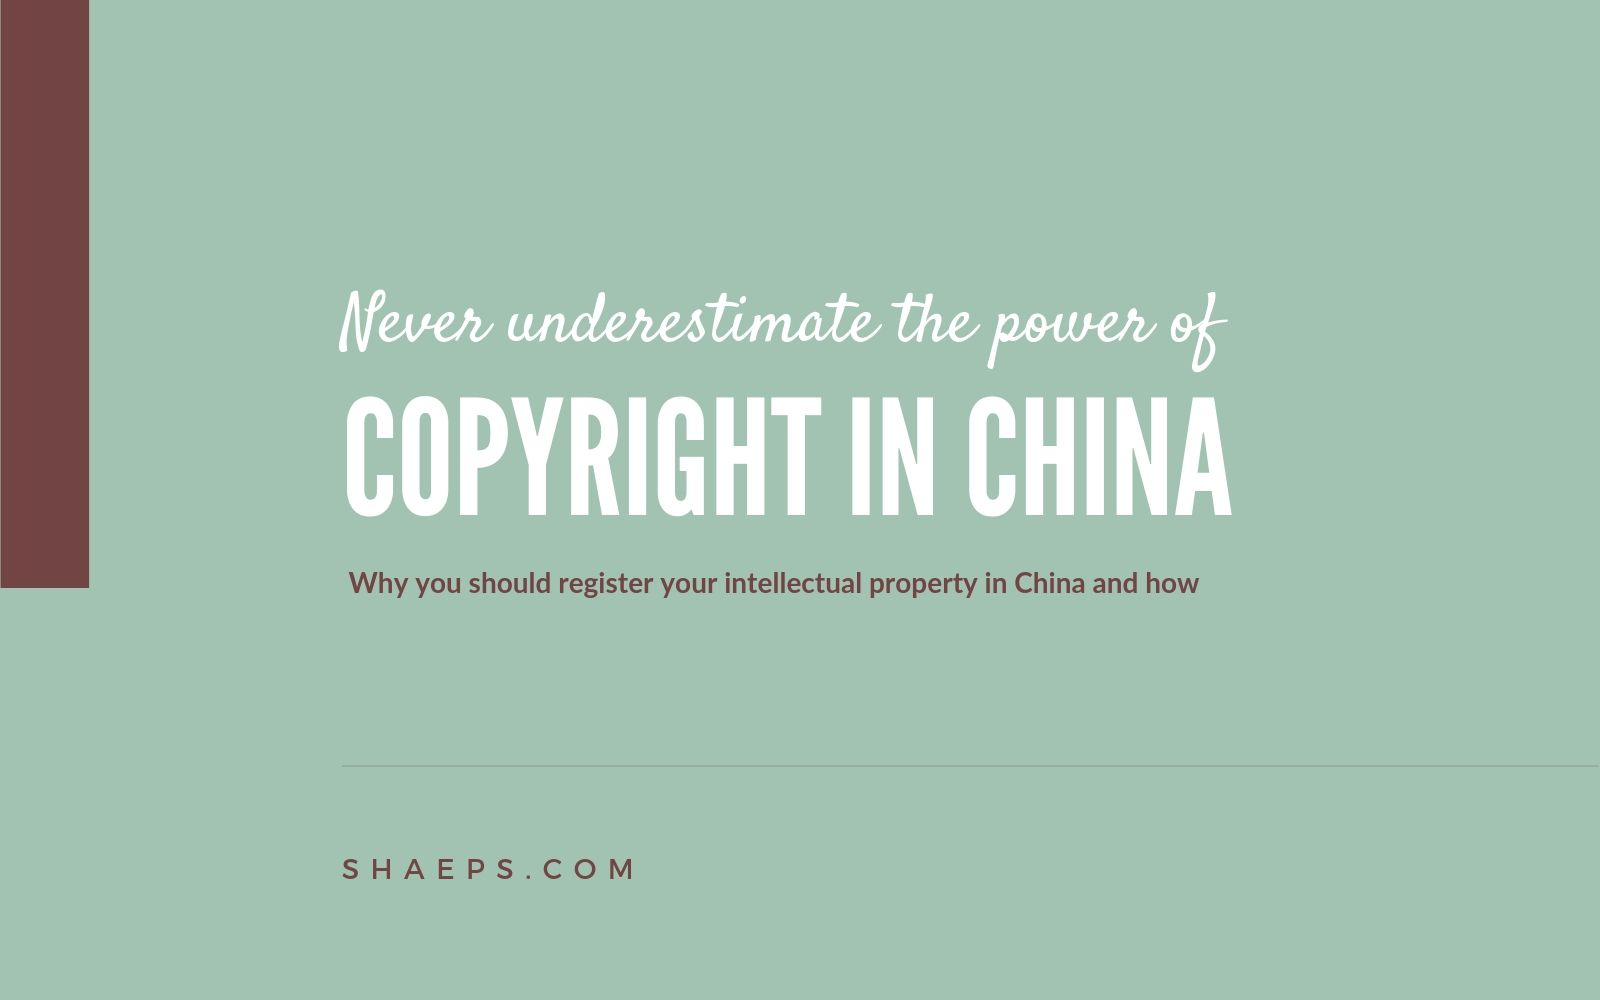 200 bucks and 31 days to get the power of copyright in China